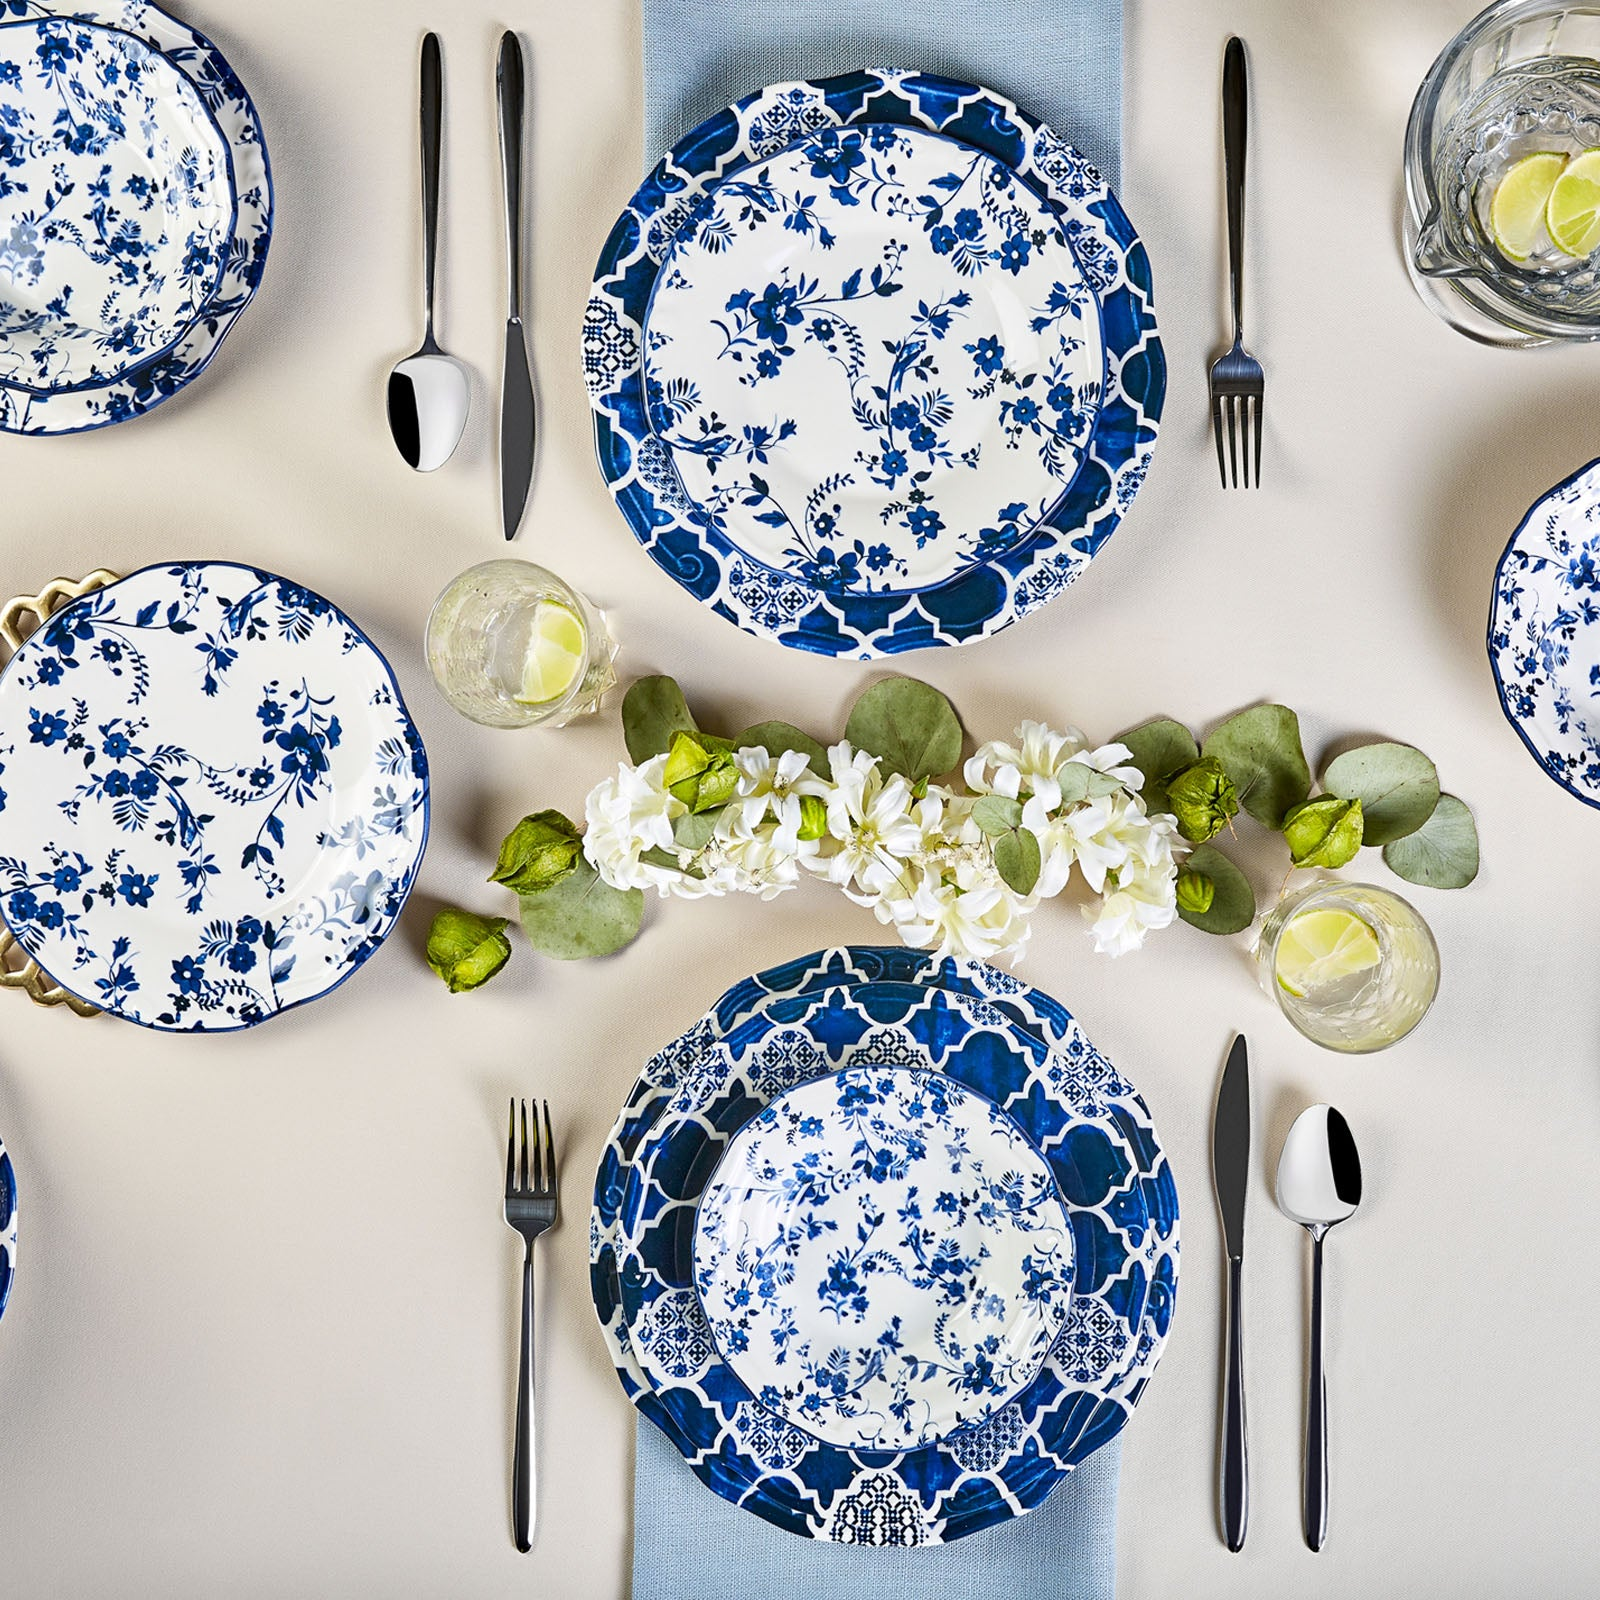 Karaca Deep Blue 24-Piece Dinner Set 153.03.06.1395 - ebarza